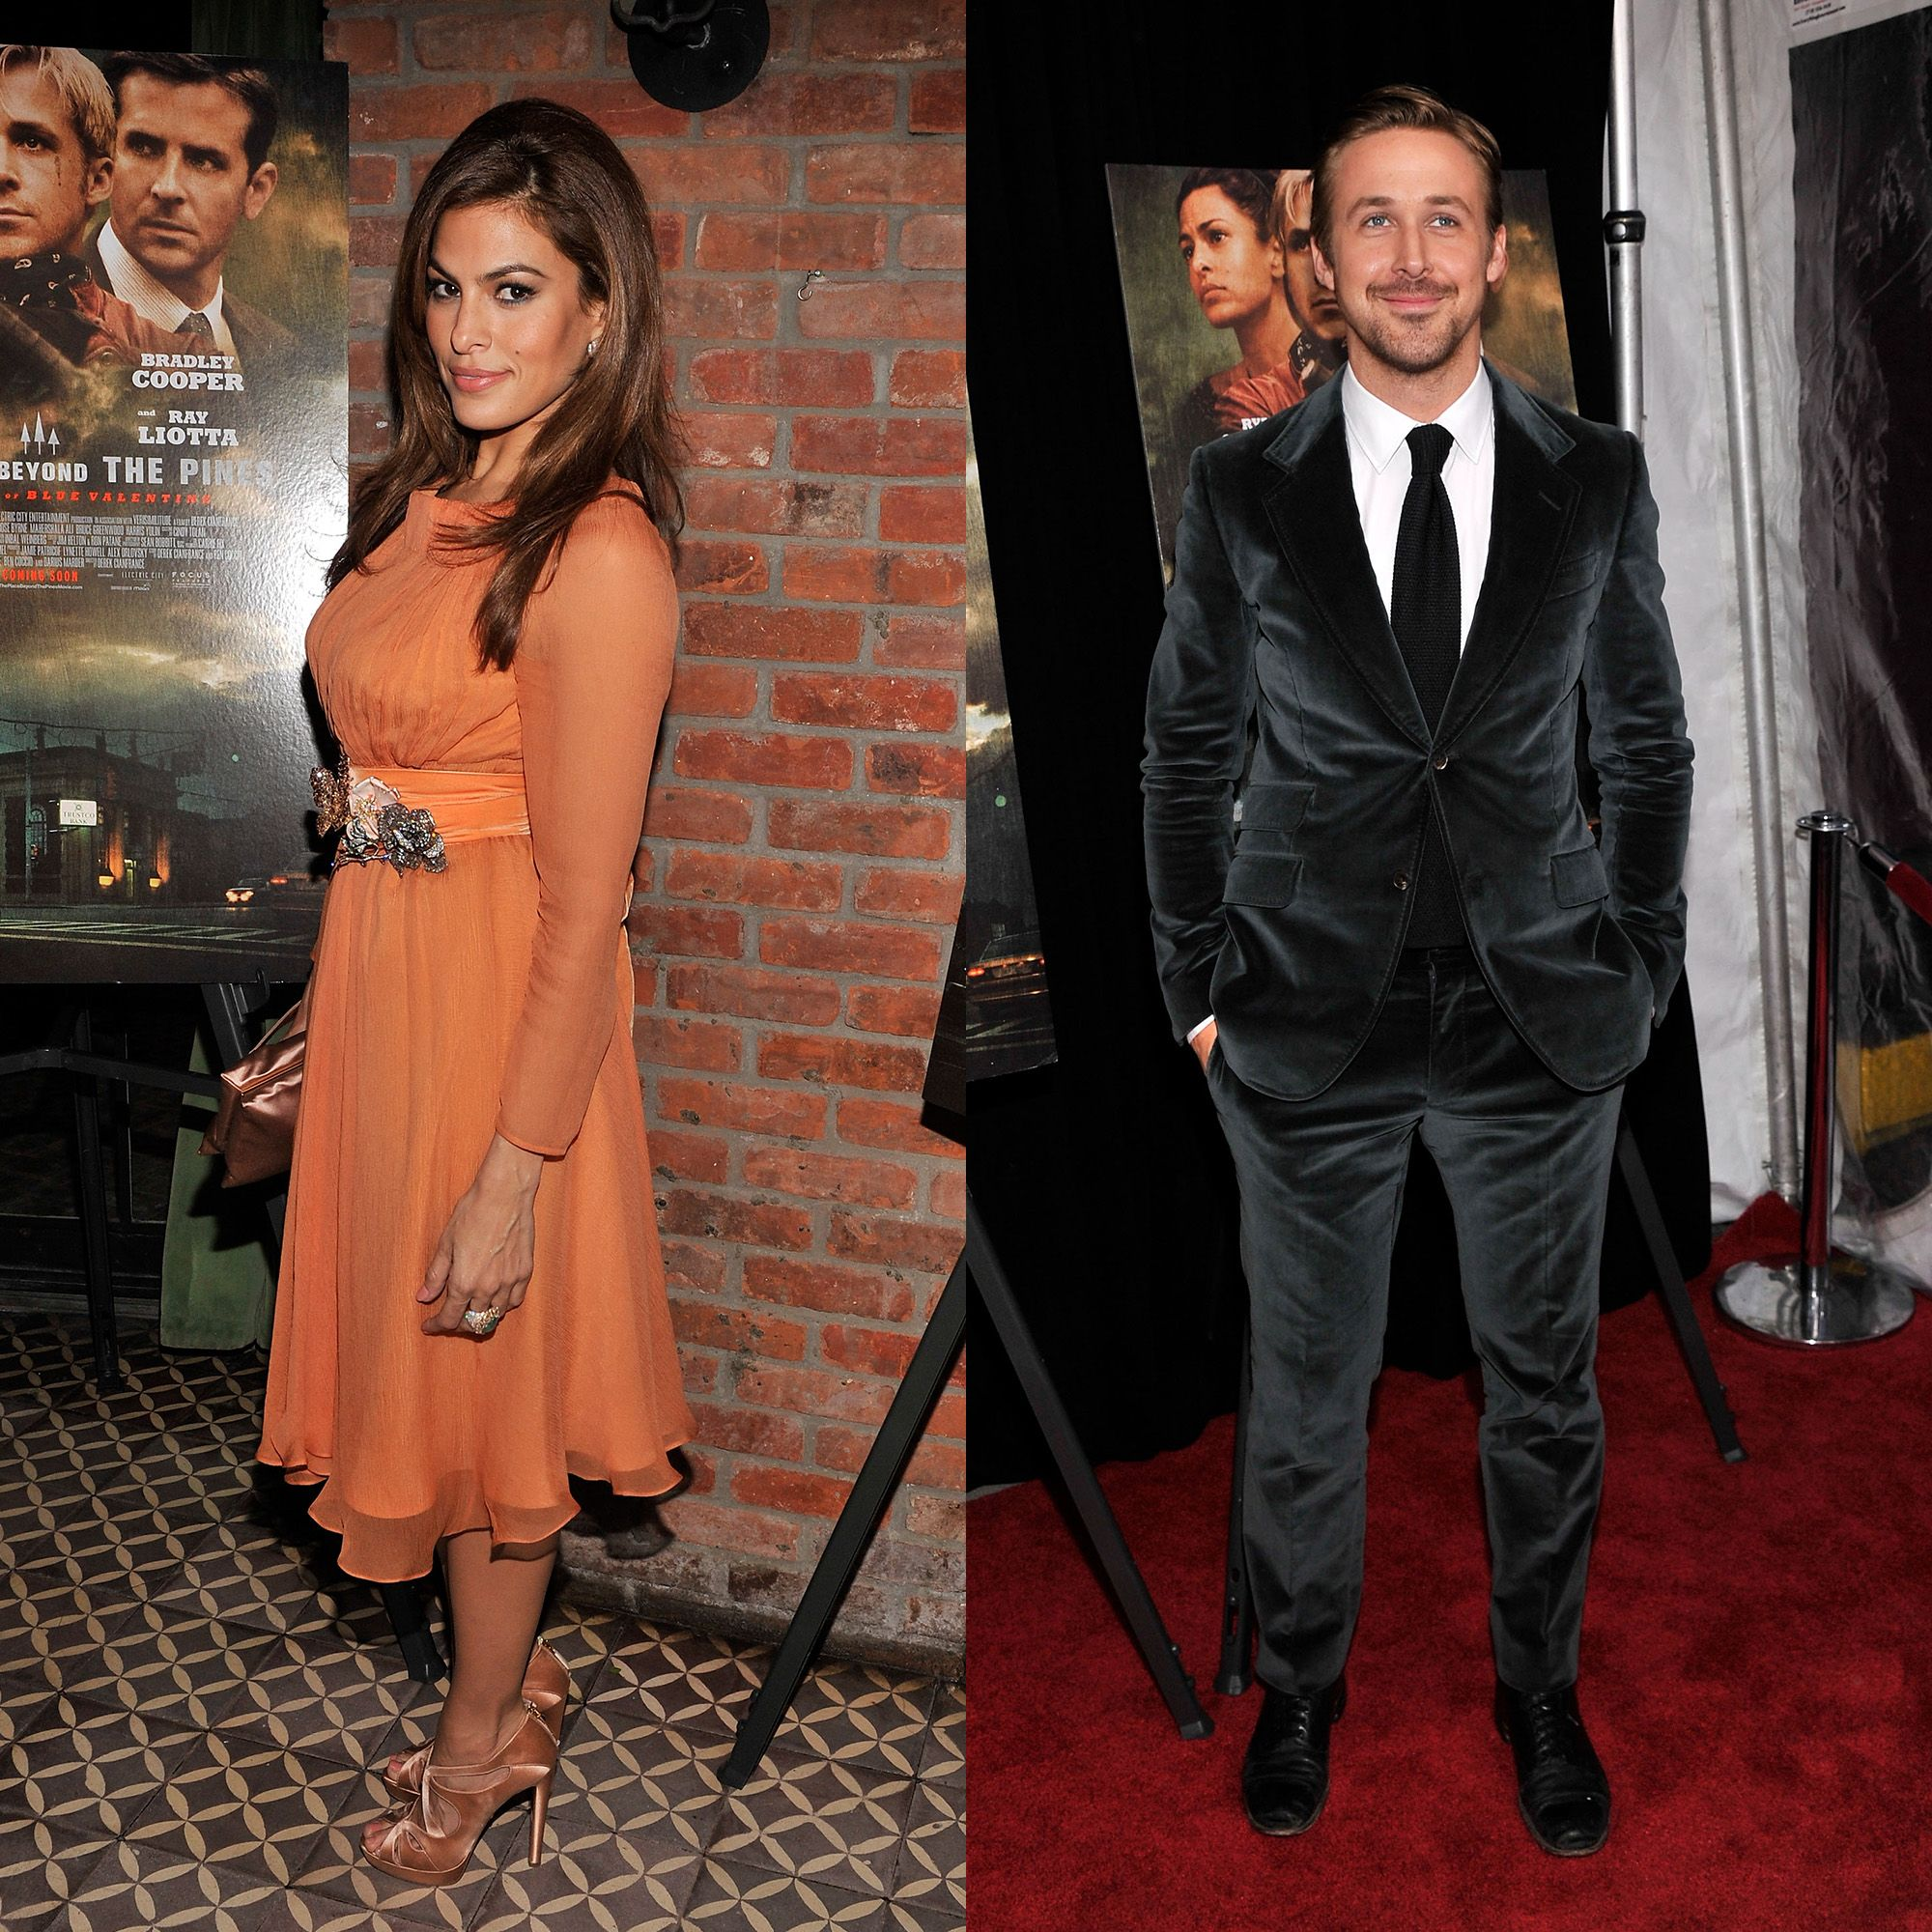 Movie with eva mendes and ryan gosling